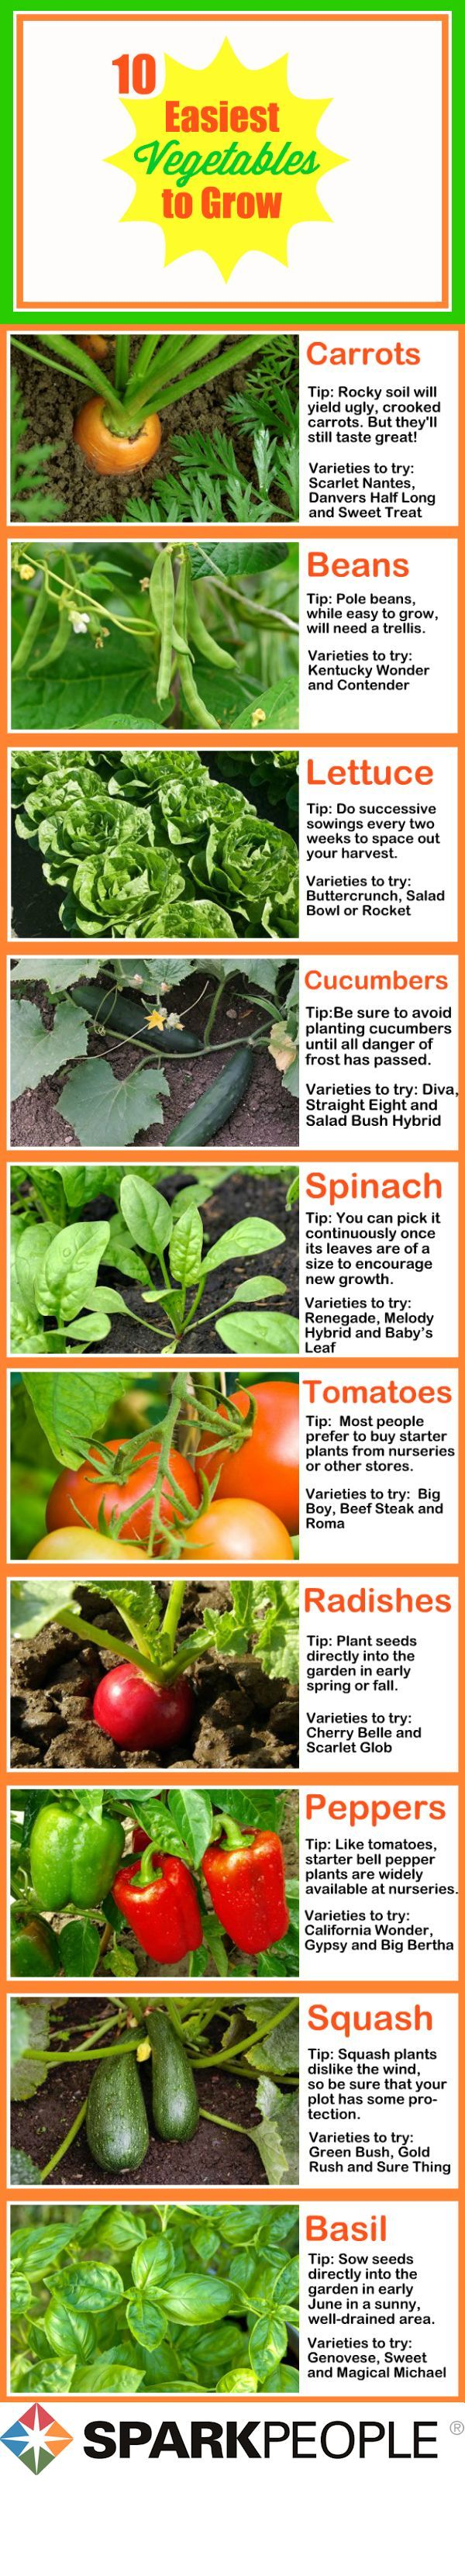 [10 EASIEST Vegetables to Grow] Make this THE YEAR you start that vegetable garden.